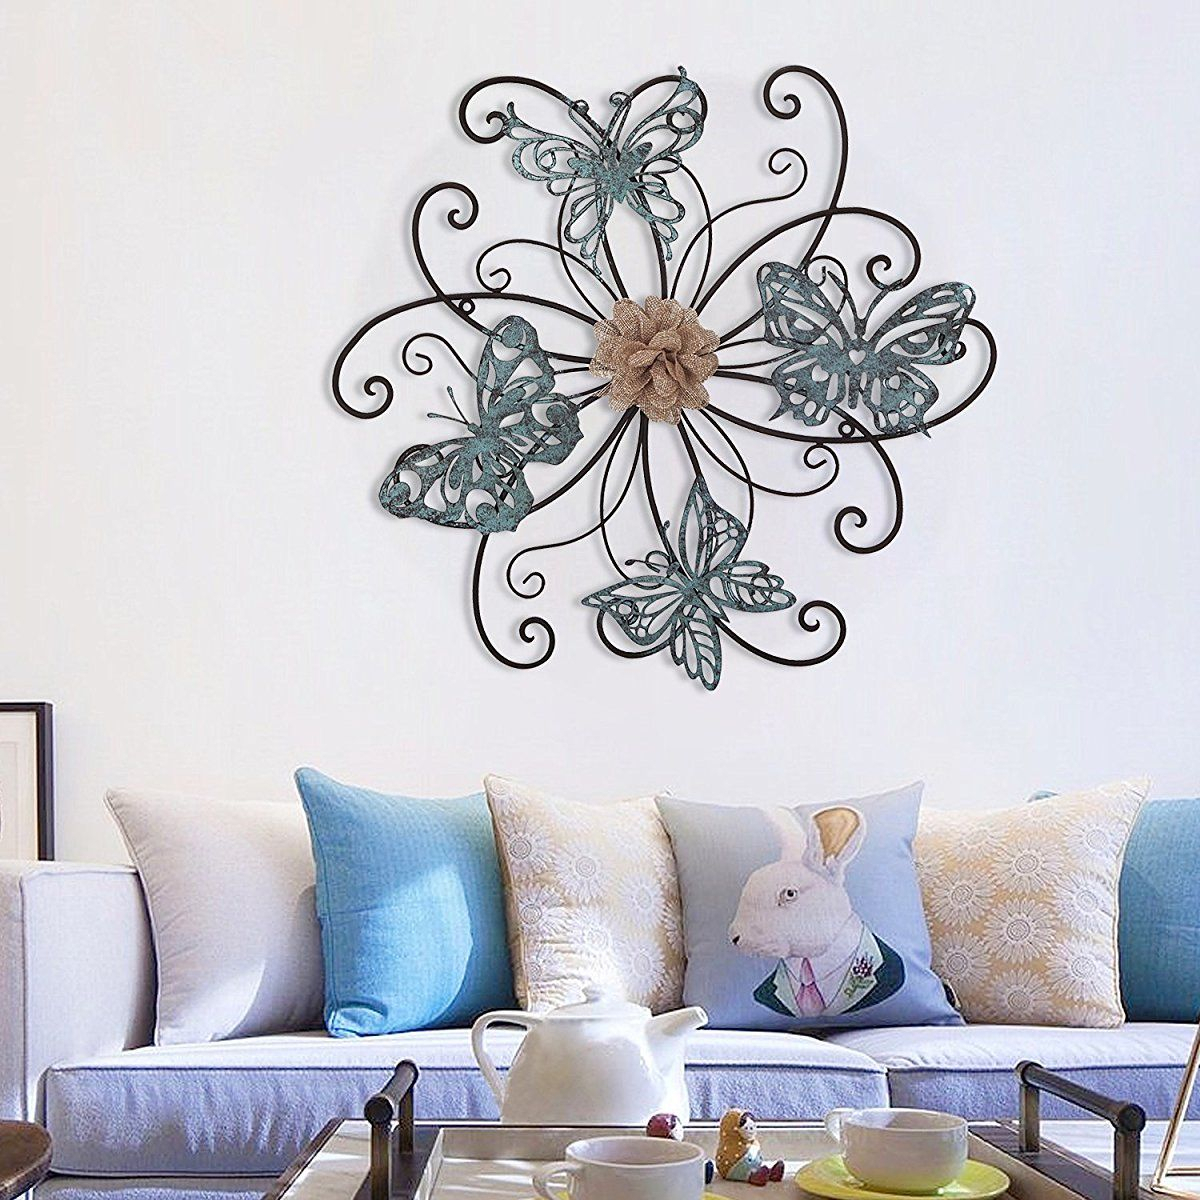 Homes Art Flower And Butterfly Urban Design Metal Wall Decor Throughout Flower And Butterfly Urban Design Metal Wall Decor (View 8 of 30)